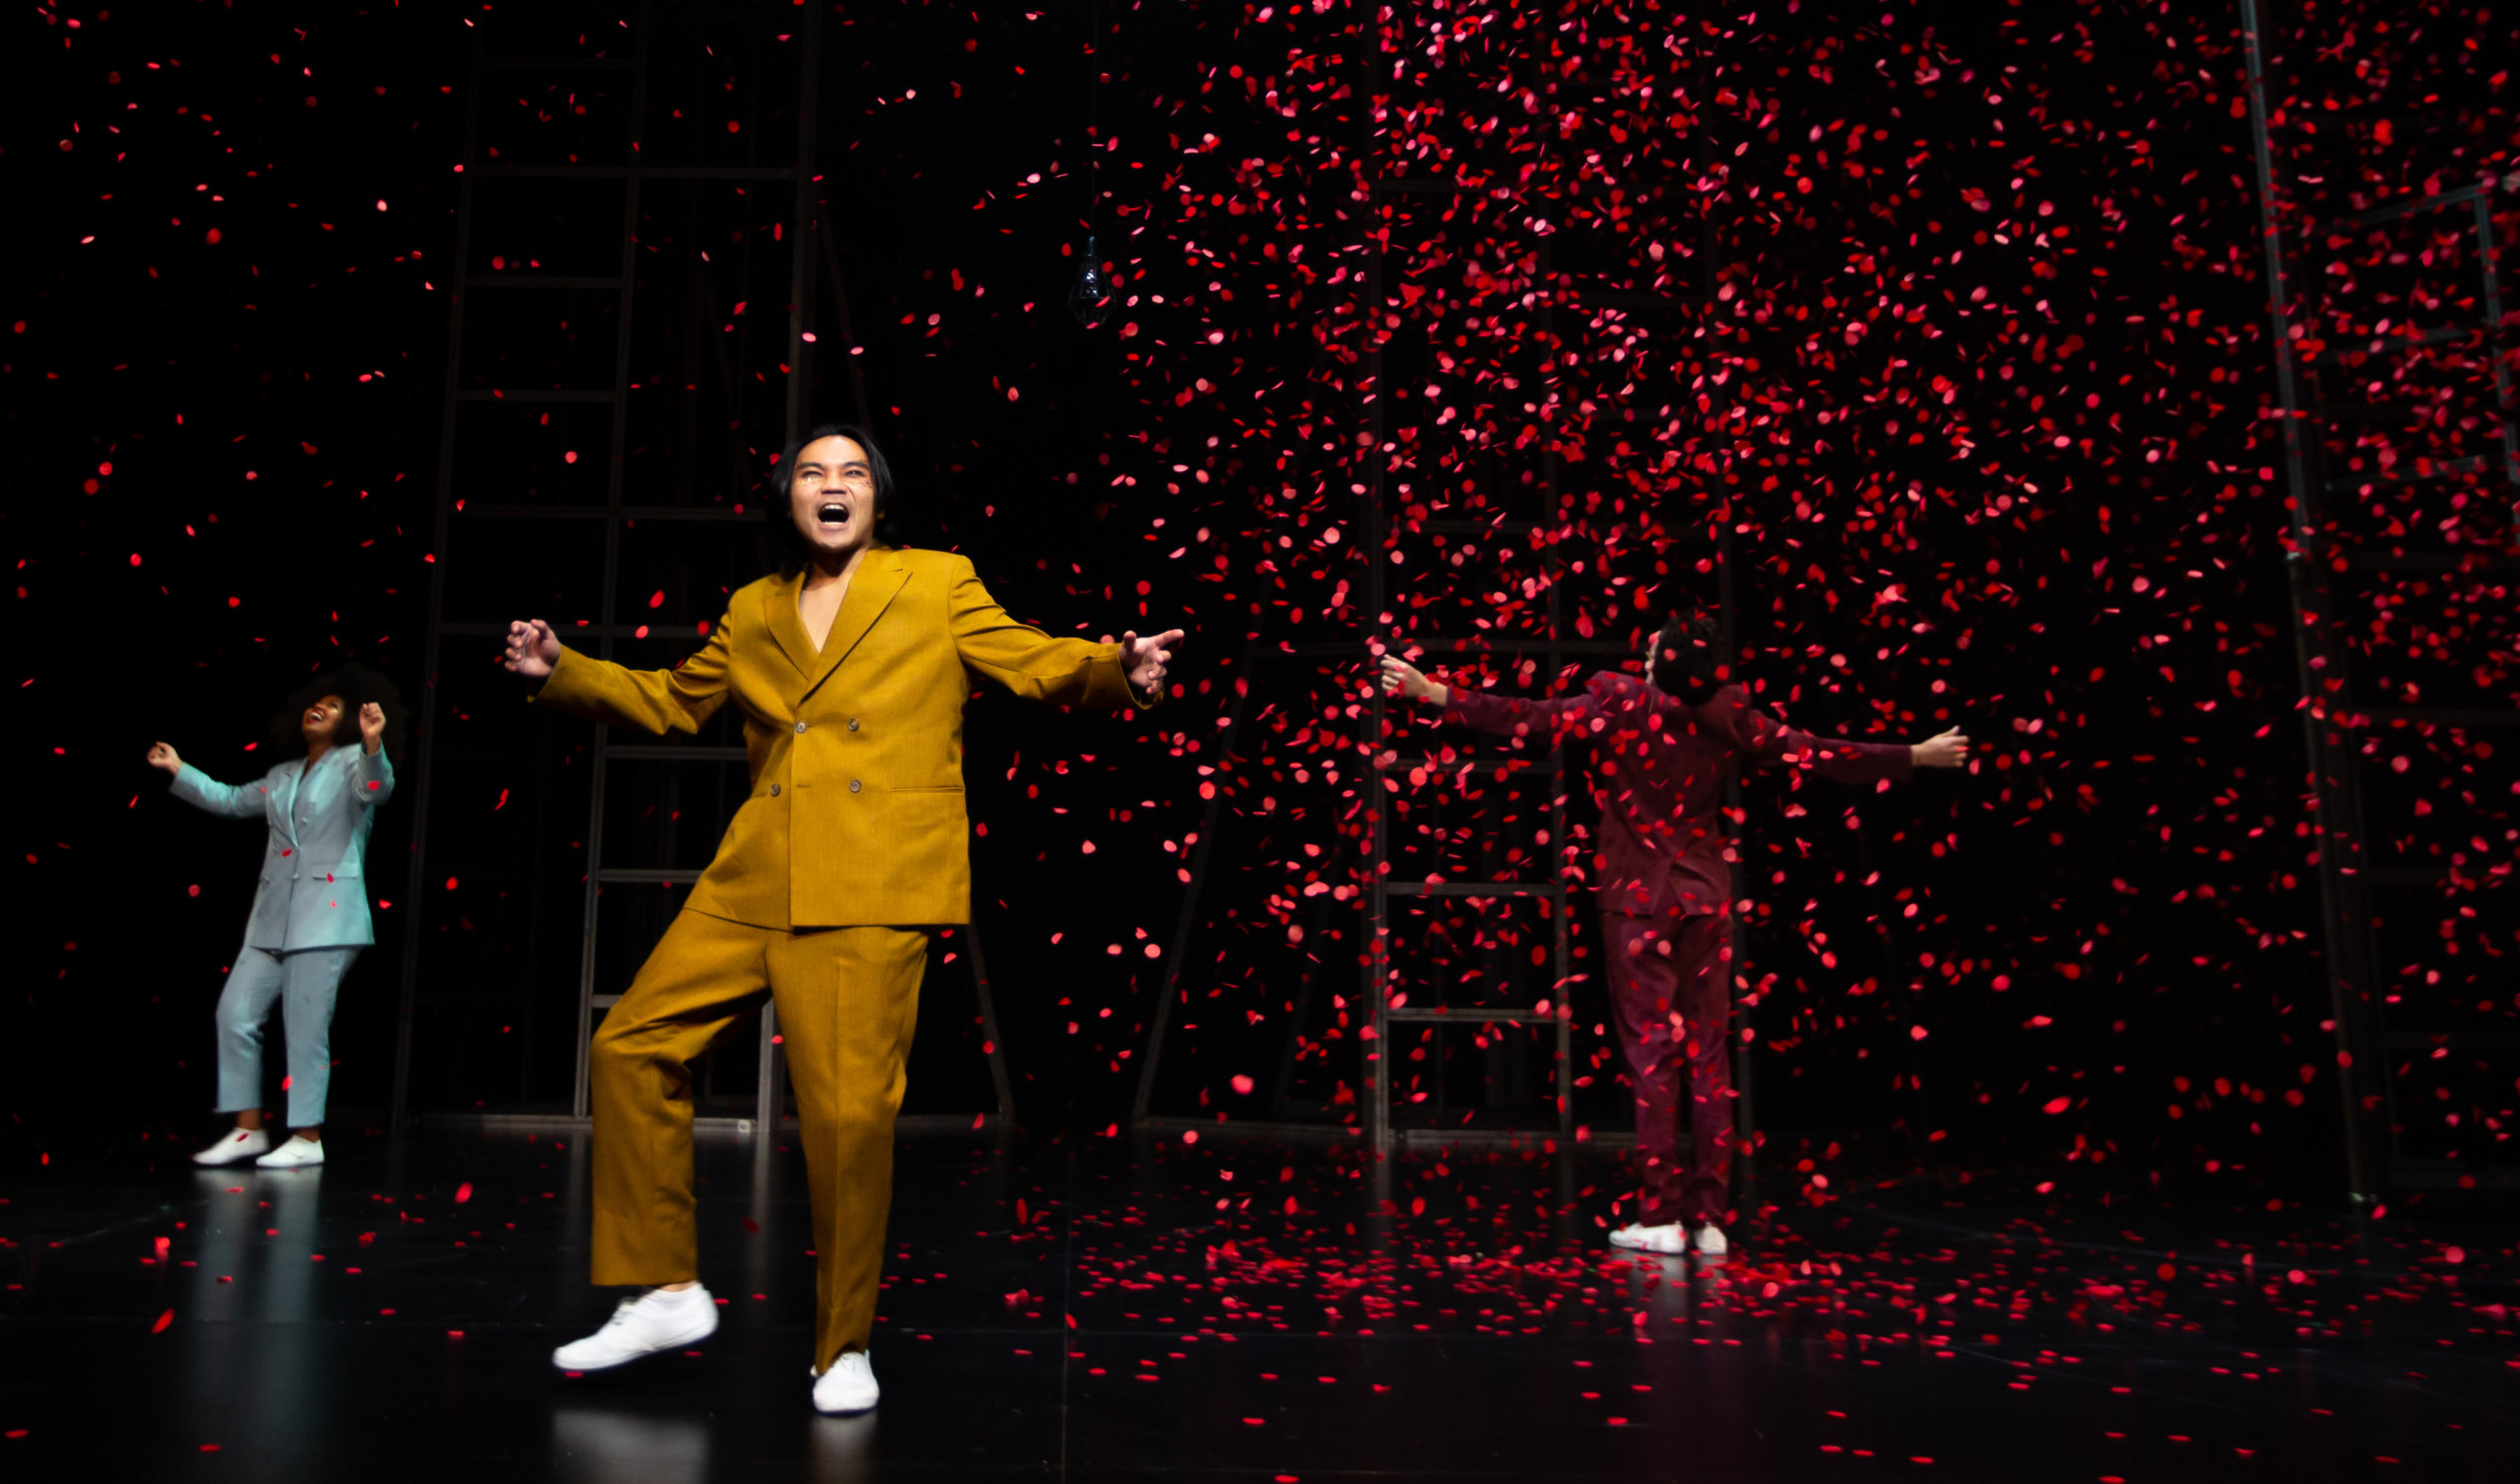 Student wearing yellow suit standing on a dark stage with red confetti falling behind them